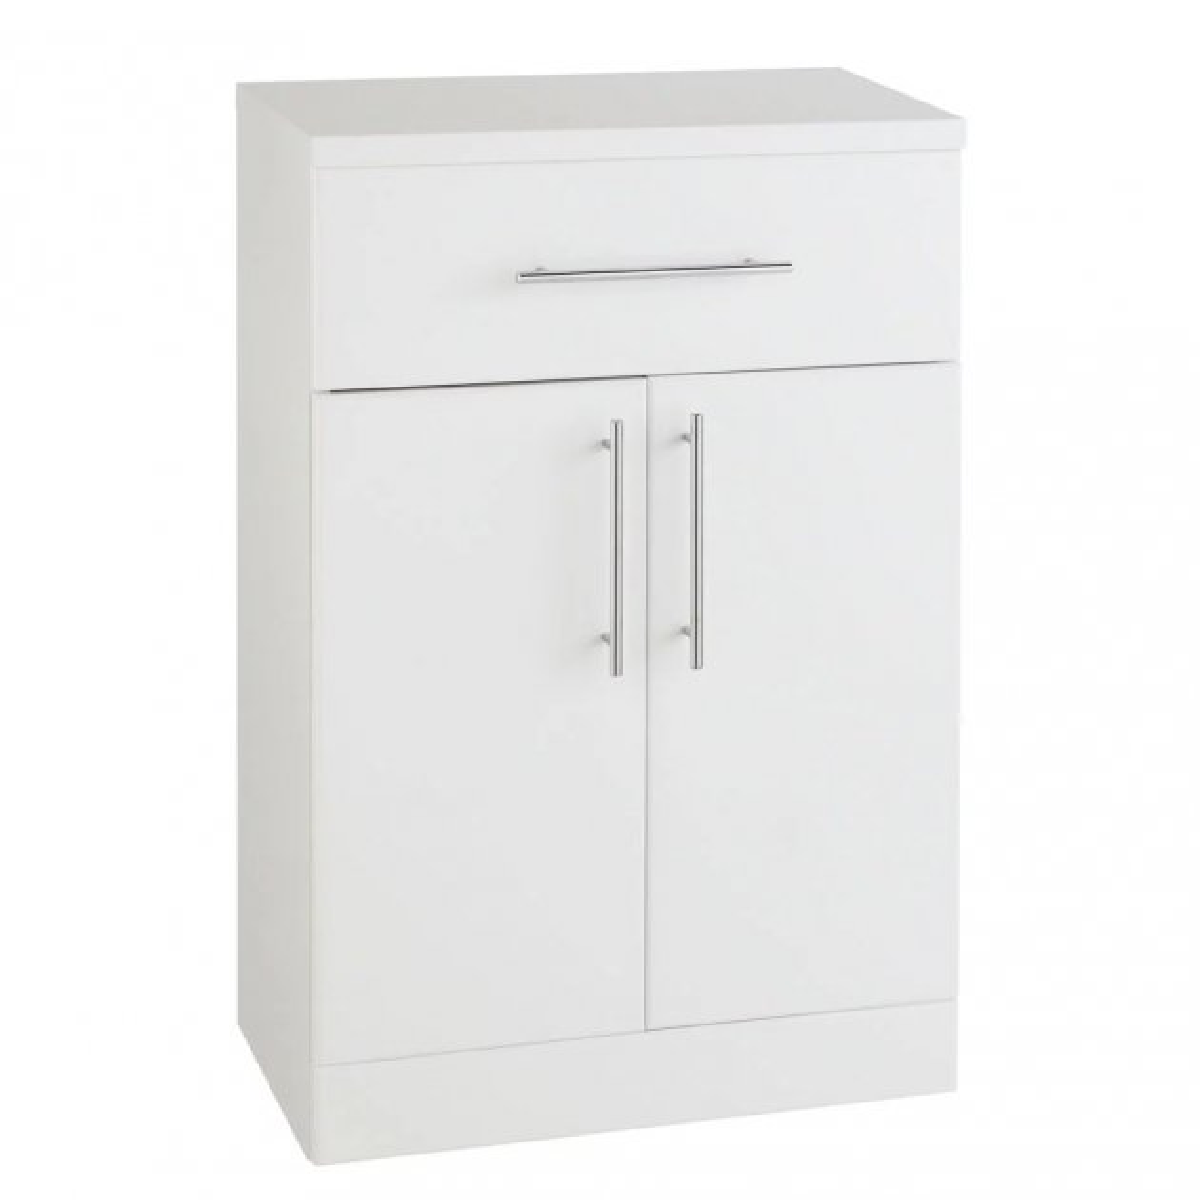 Kartell Encore White Door and Drawer Unit 500mm x 330mm Deep